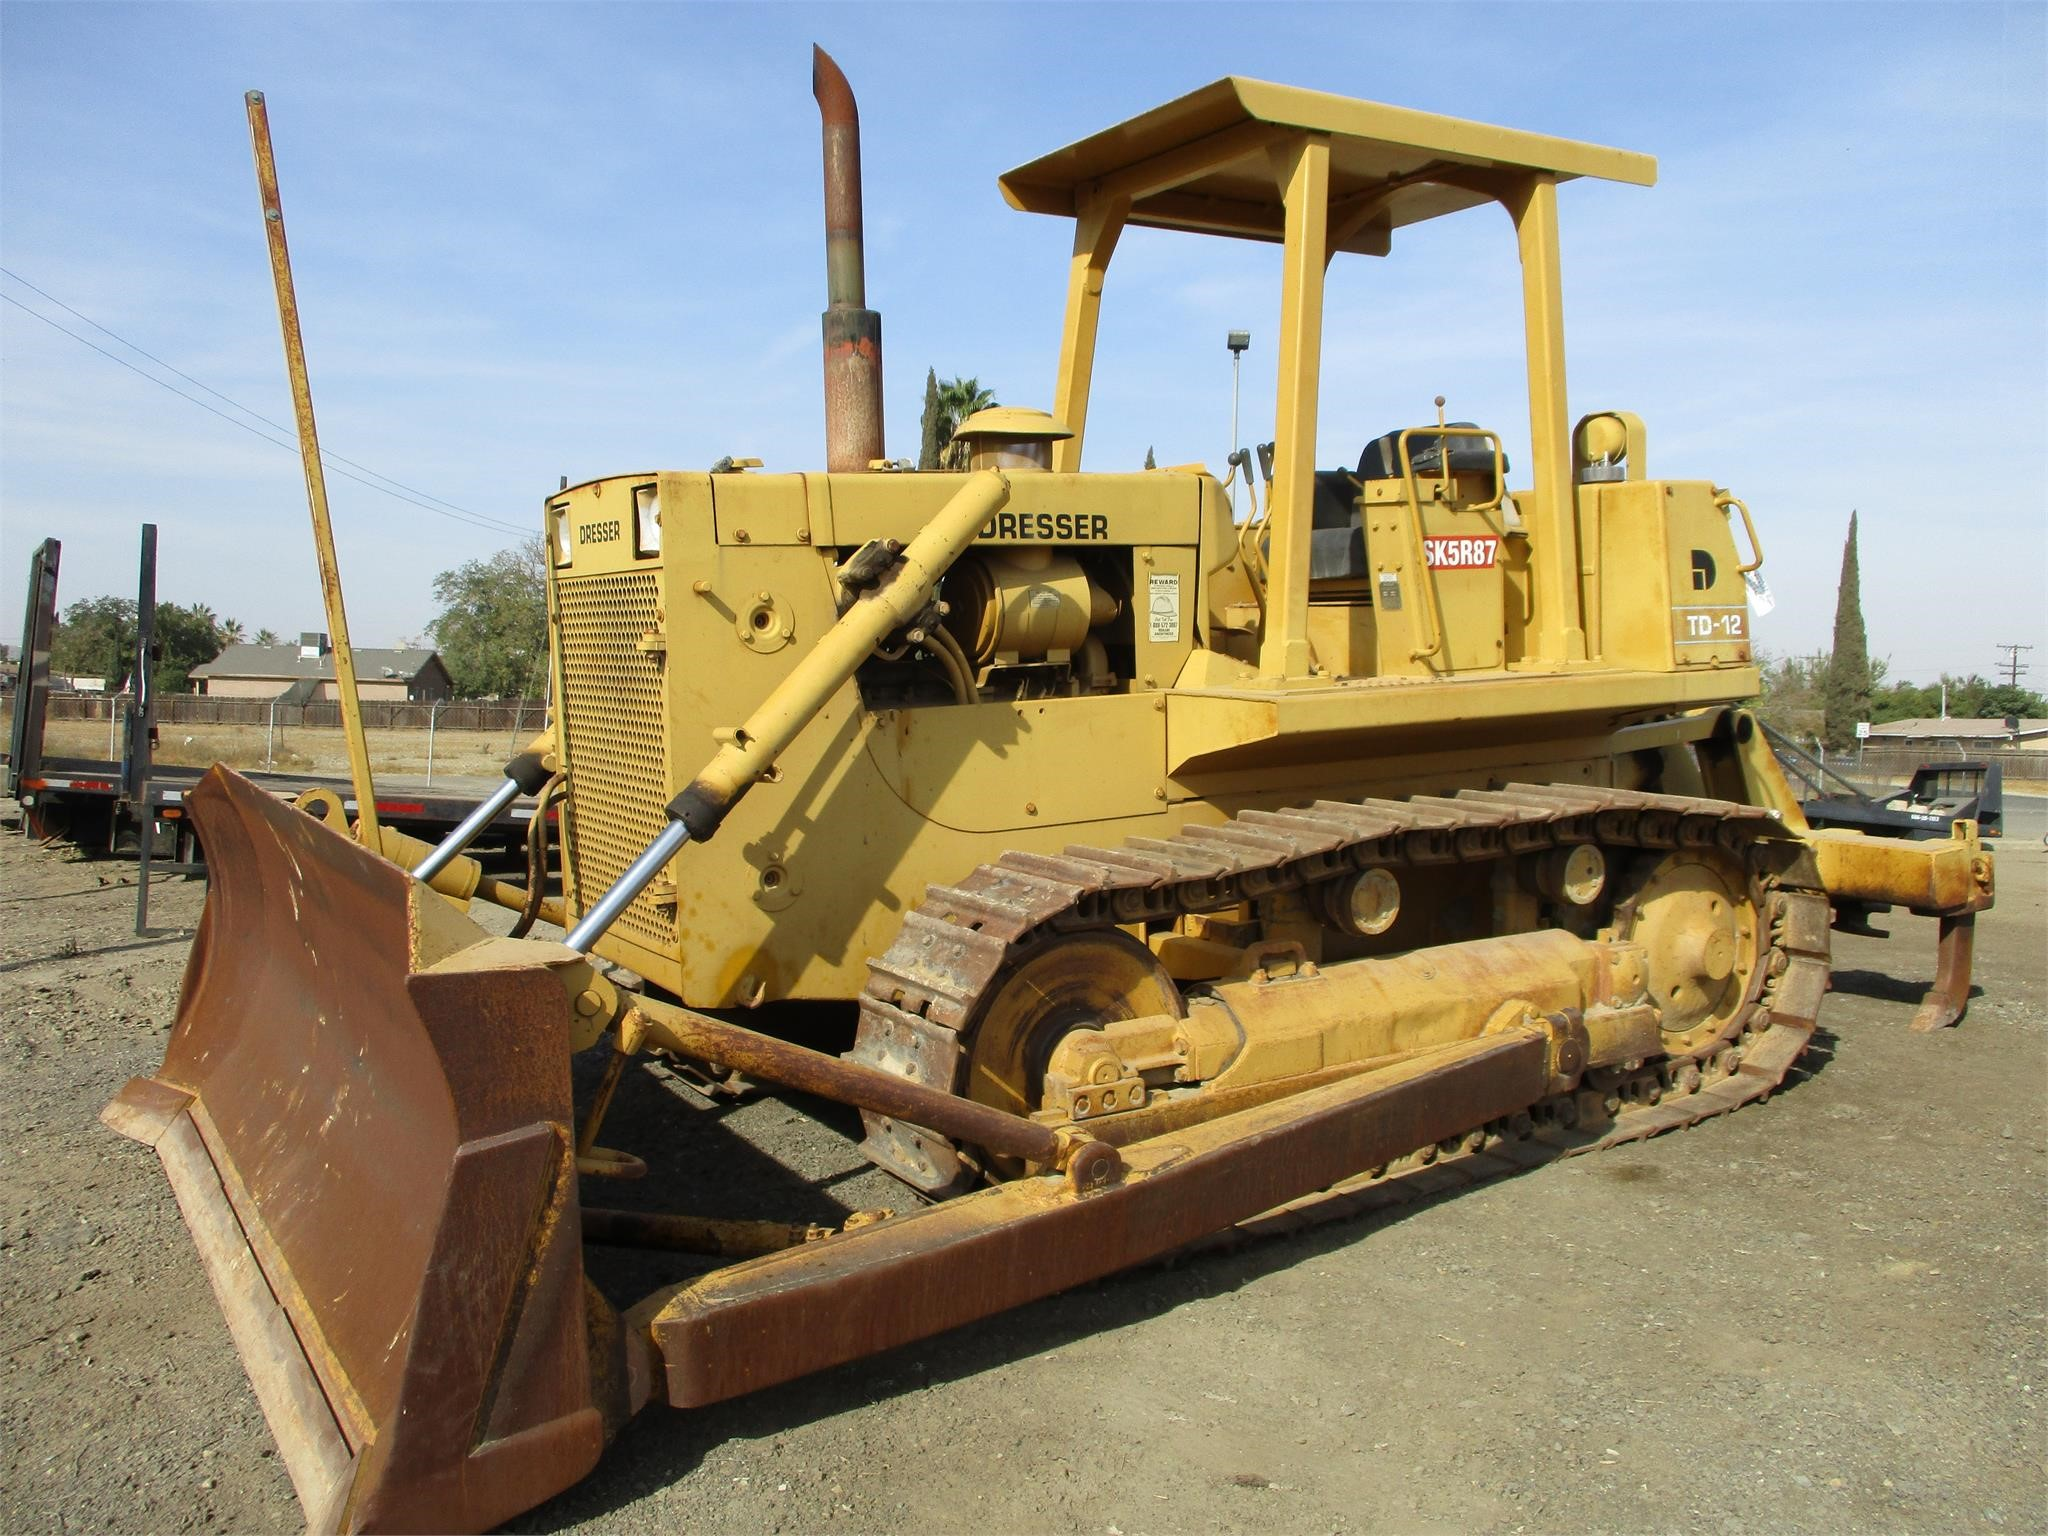 All Dresser Crawler Dozers for Sale :: Construction